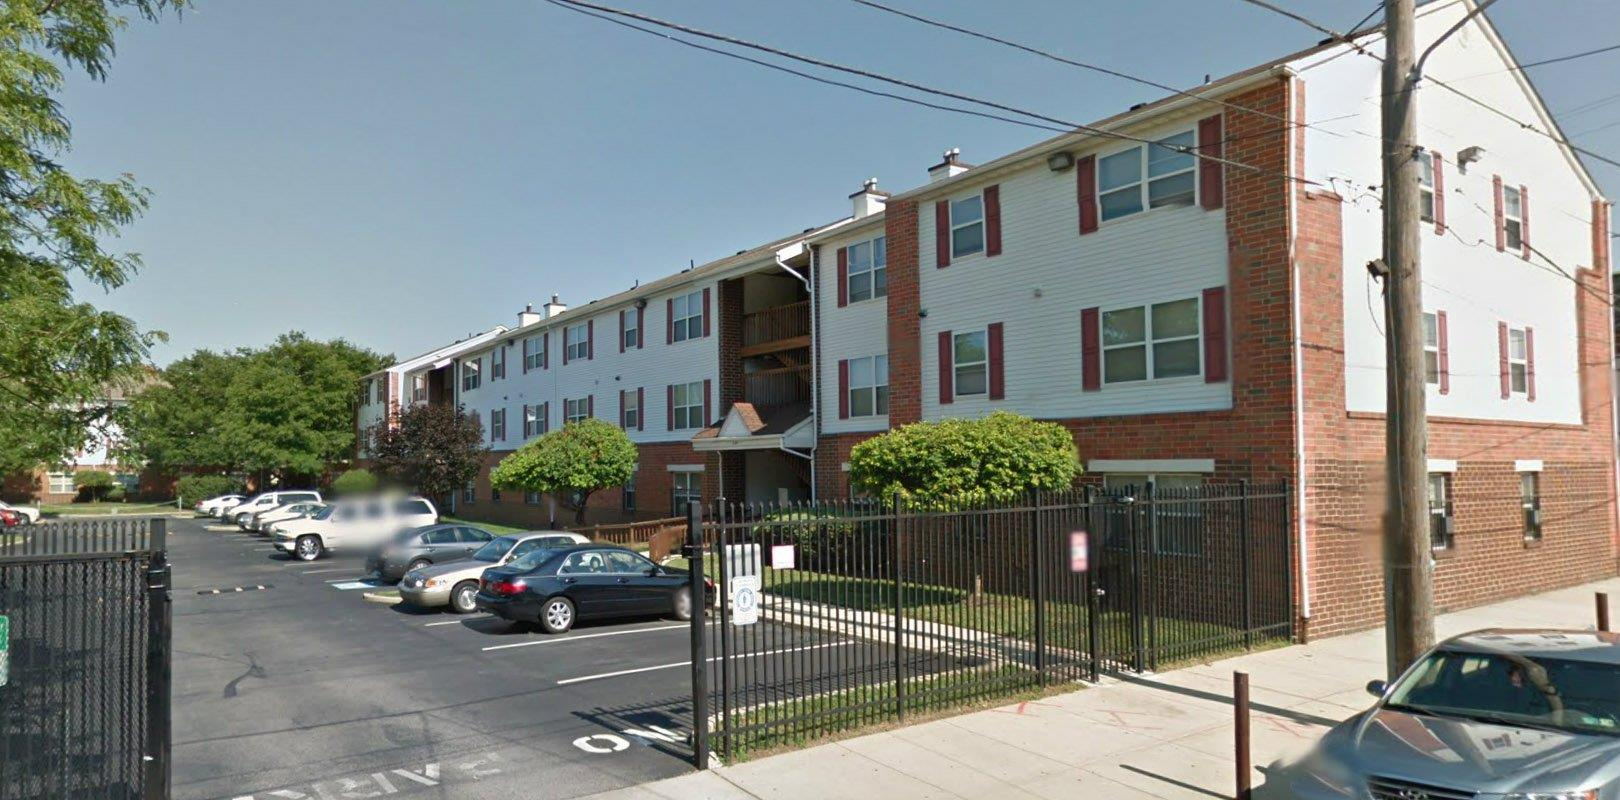 Philly Apartments For Sale